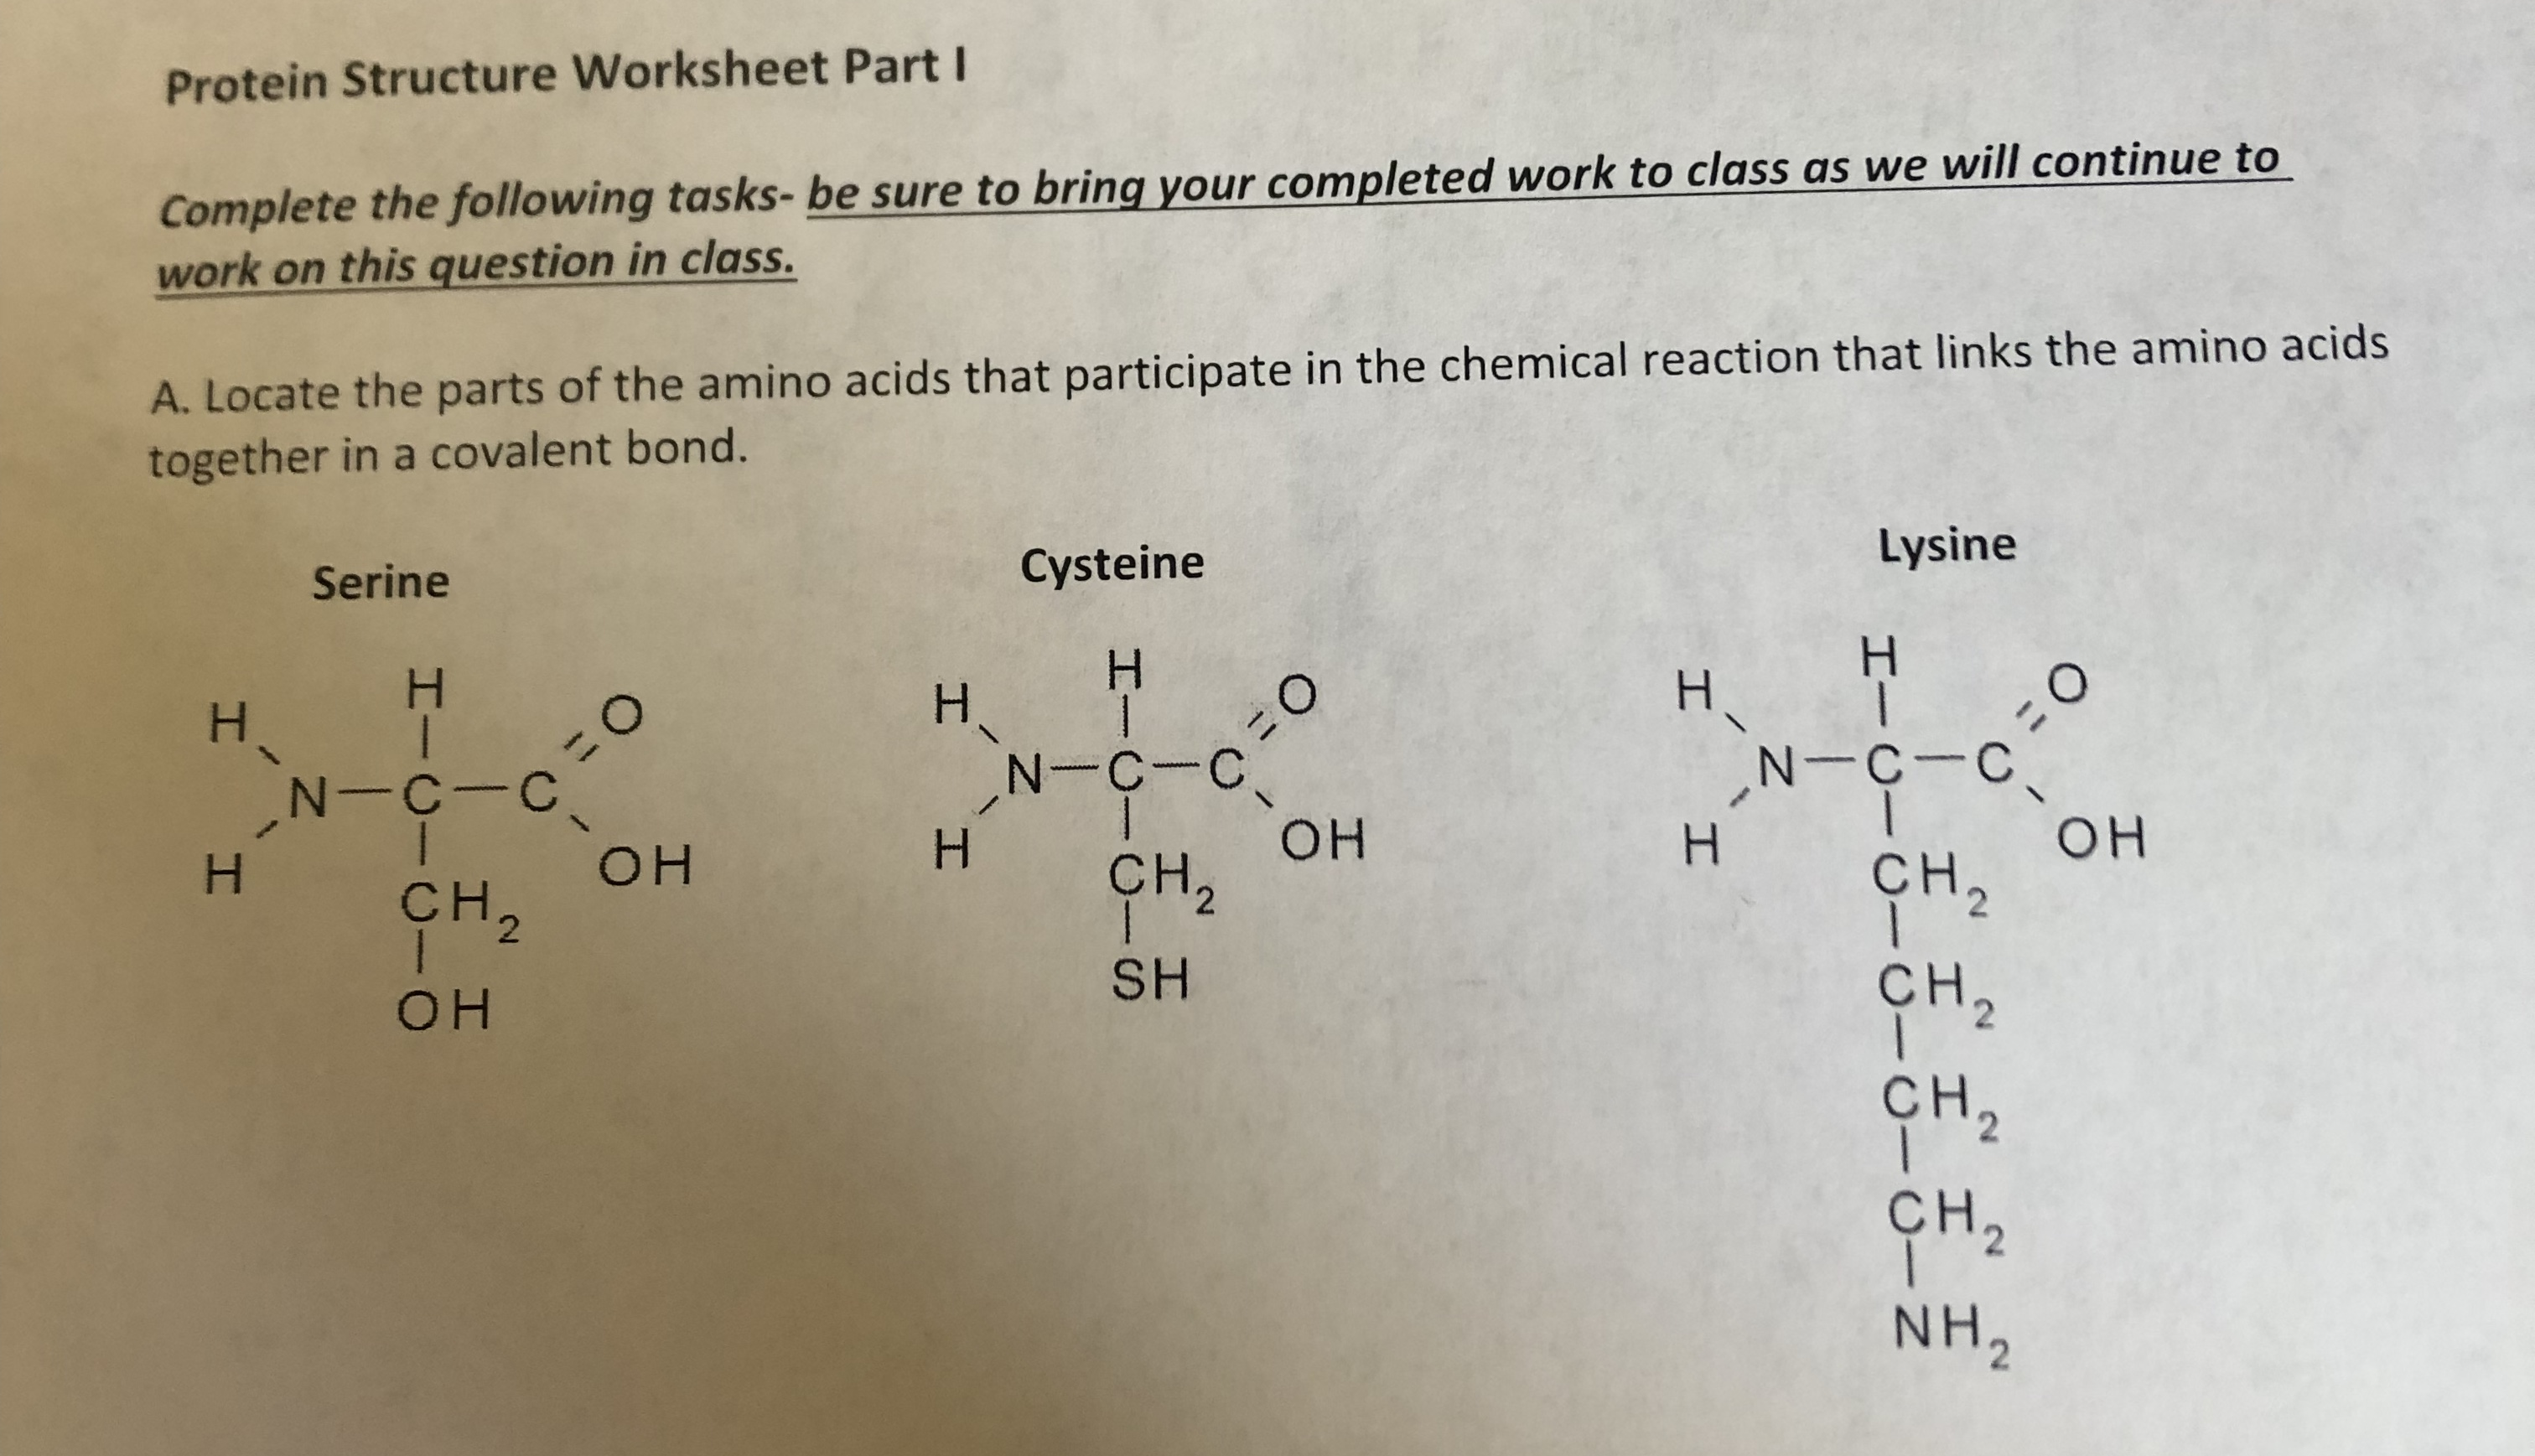 Answered Protein Structure Worksheet Parti